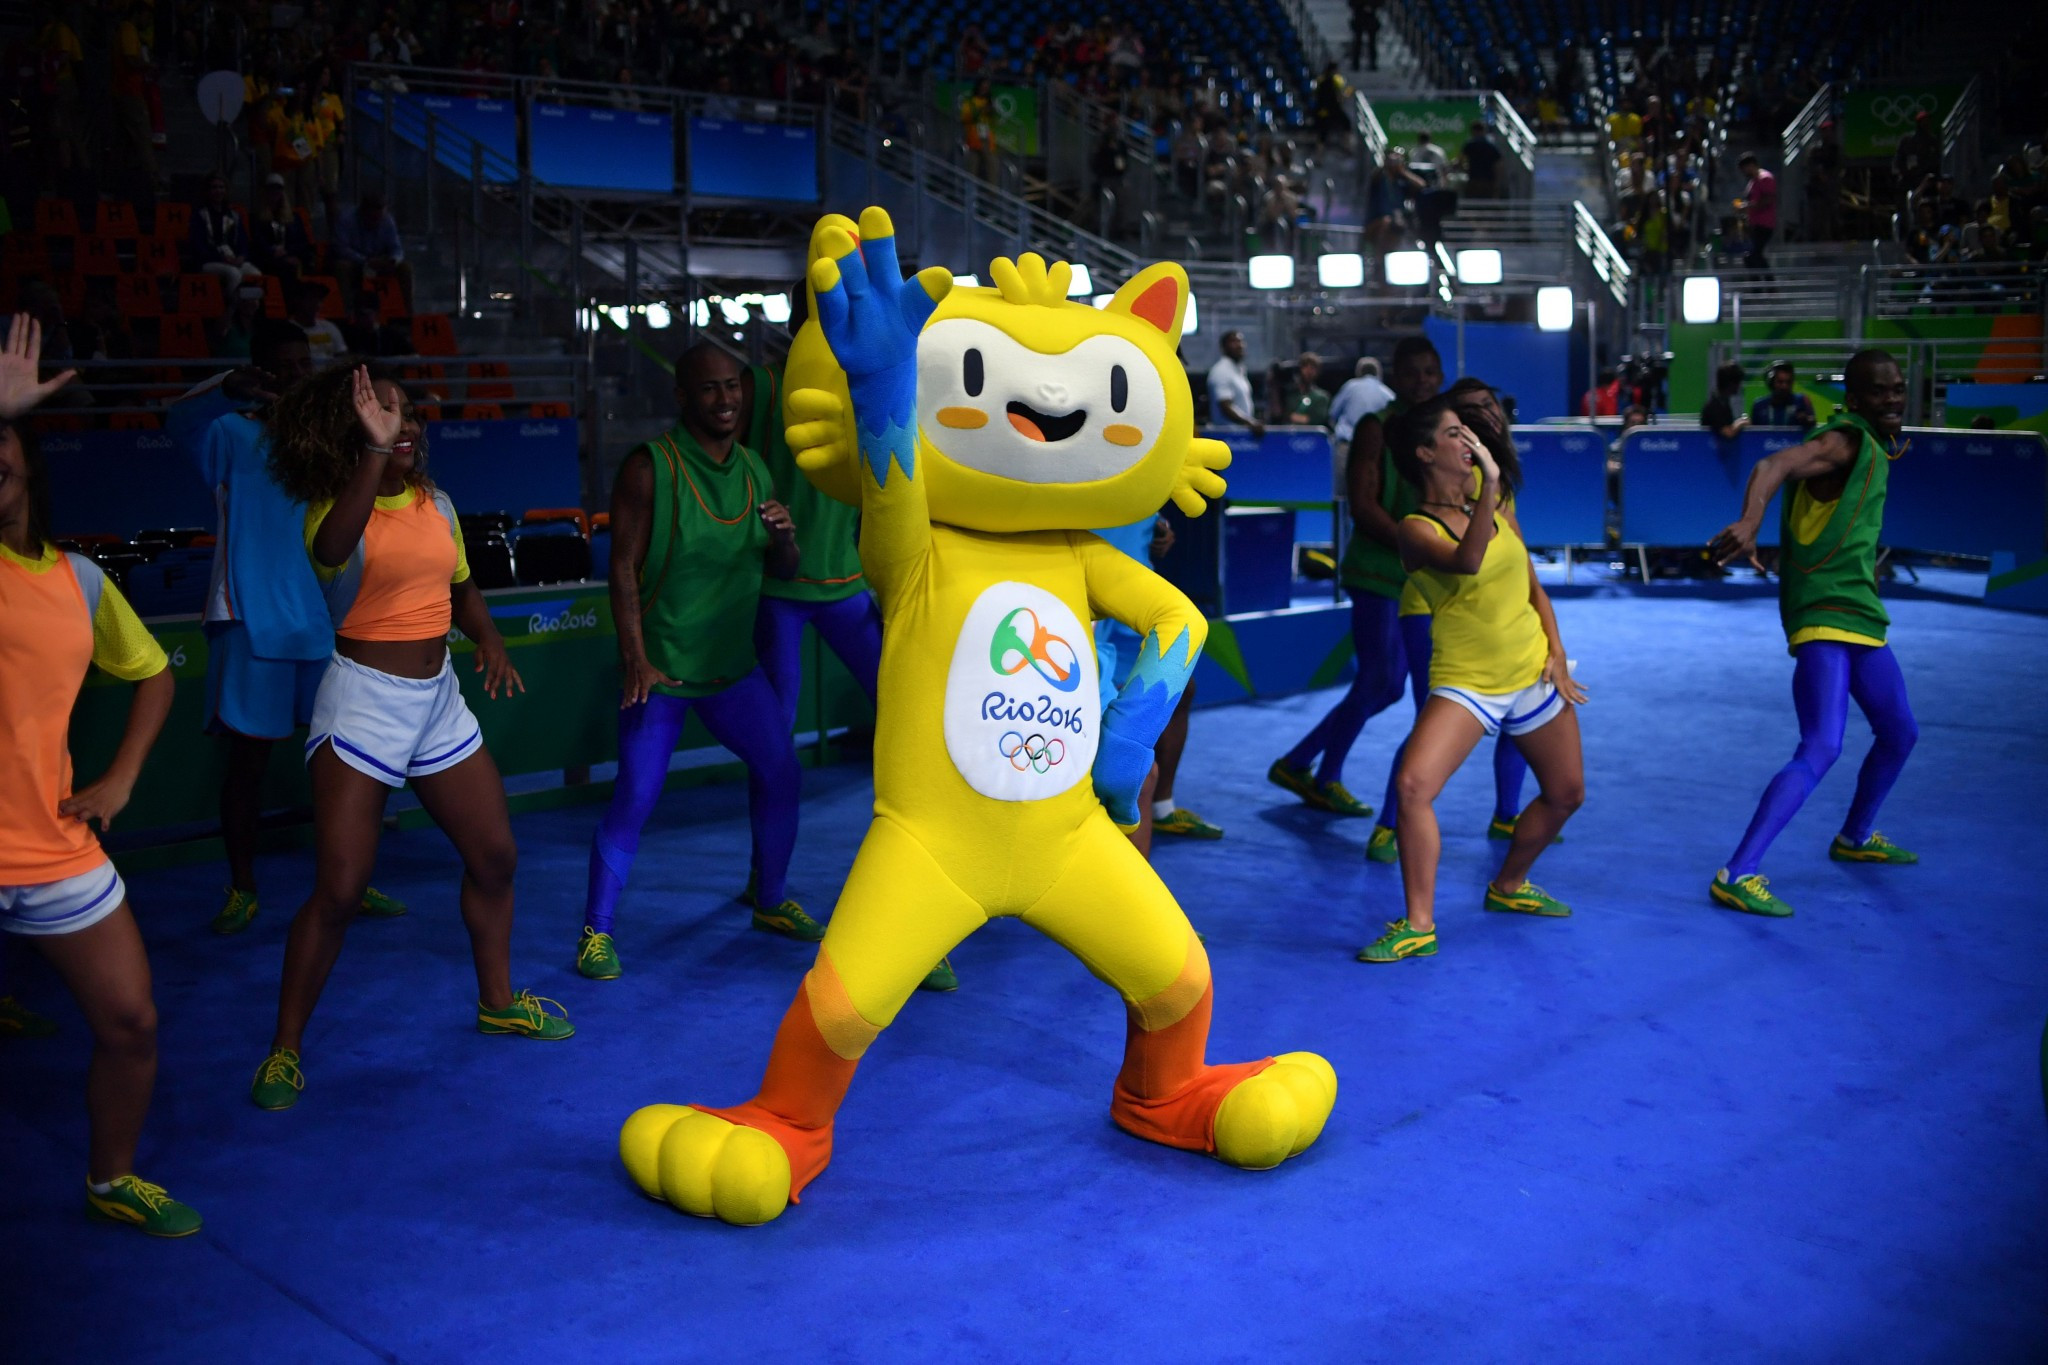 Vinicius was the mascot of the Rio 2016 Olympic Games ©Getty Images